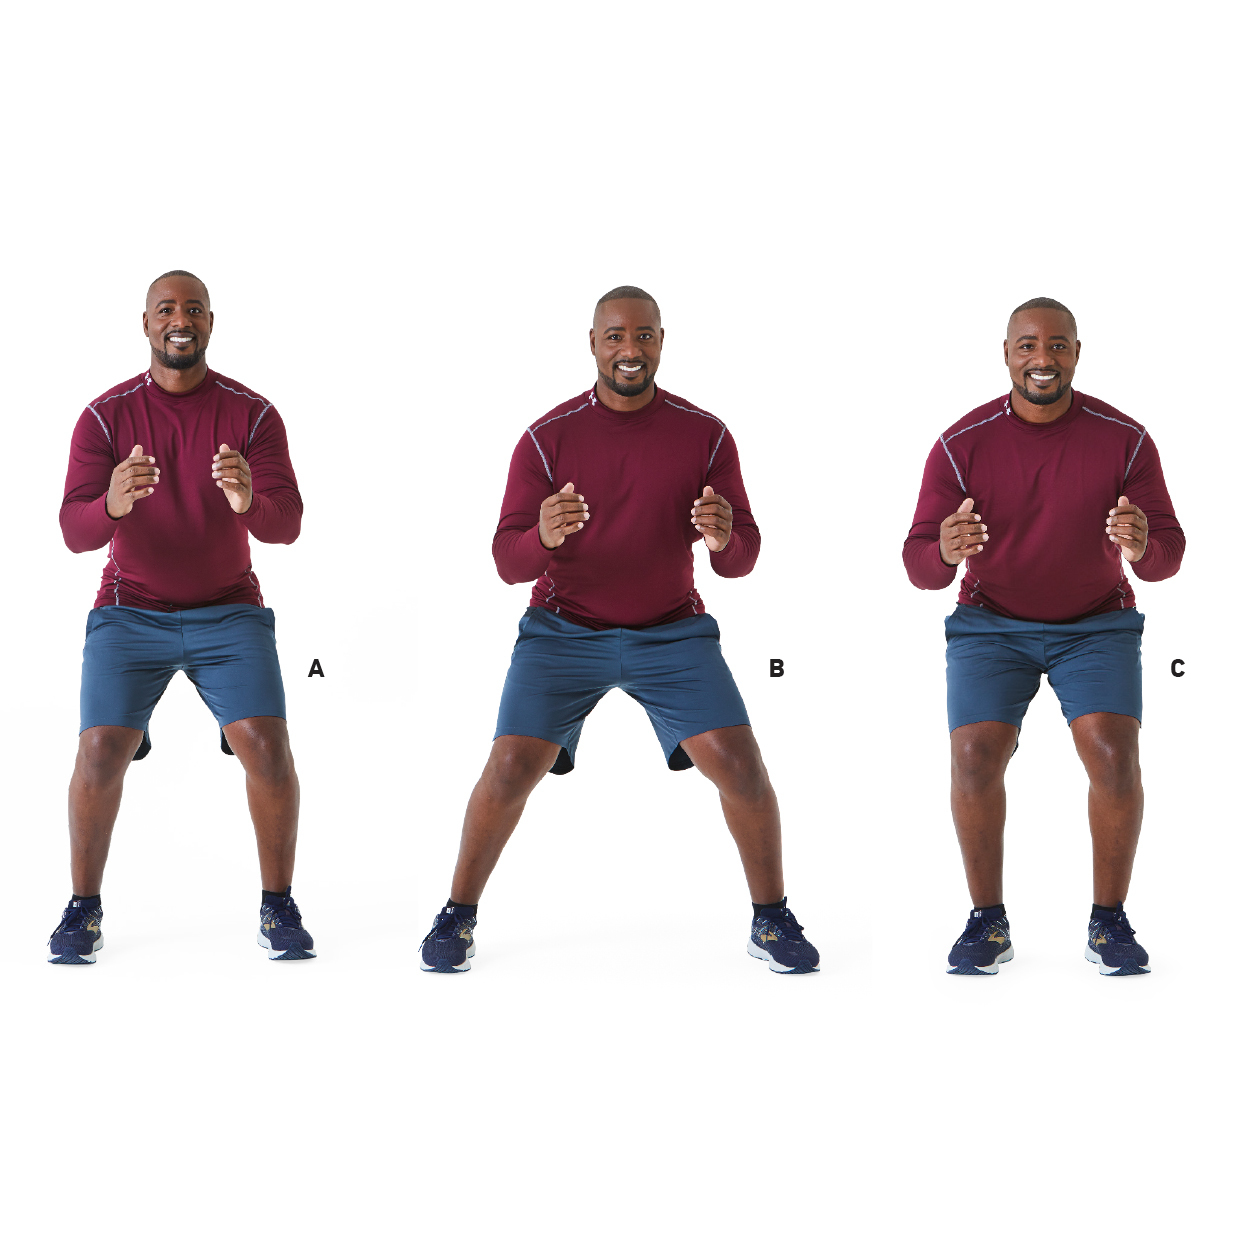 lateral shuffle exercise